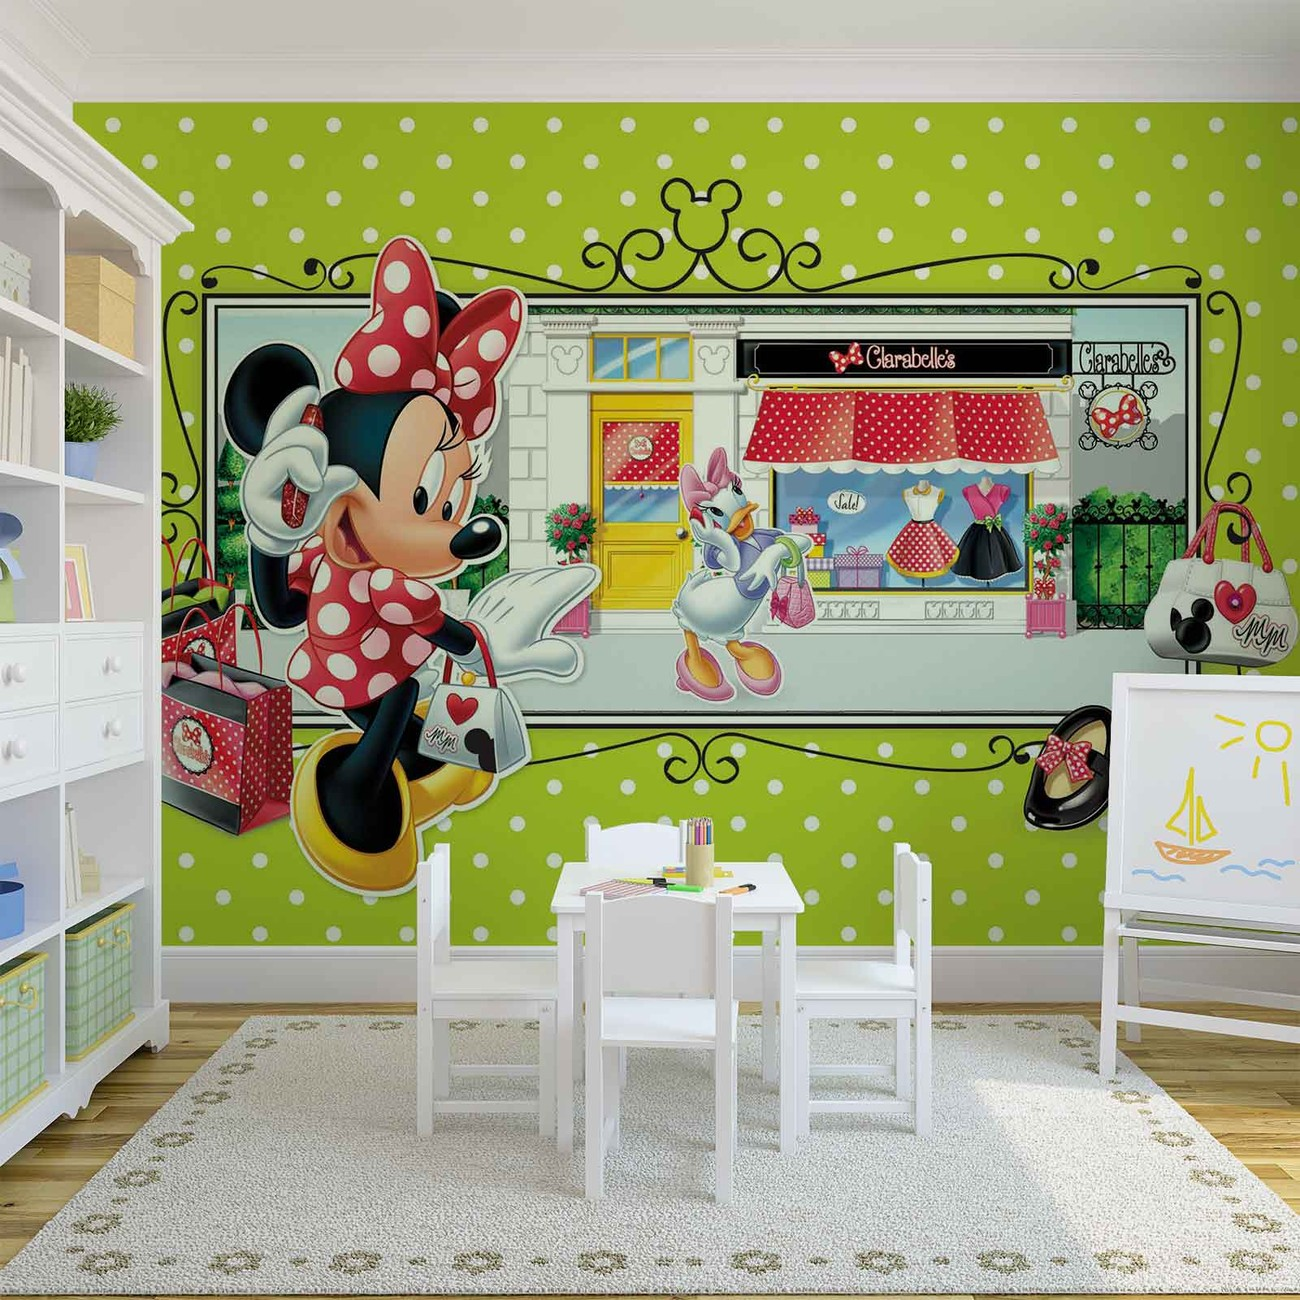 Disney minnie mouse wall paper mural buy at europosters for Disney wall mural uk